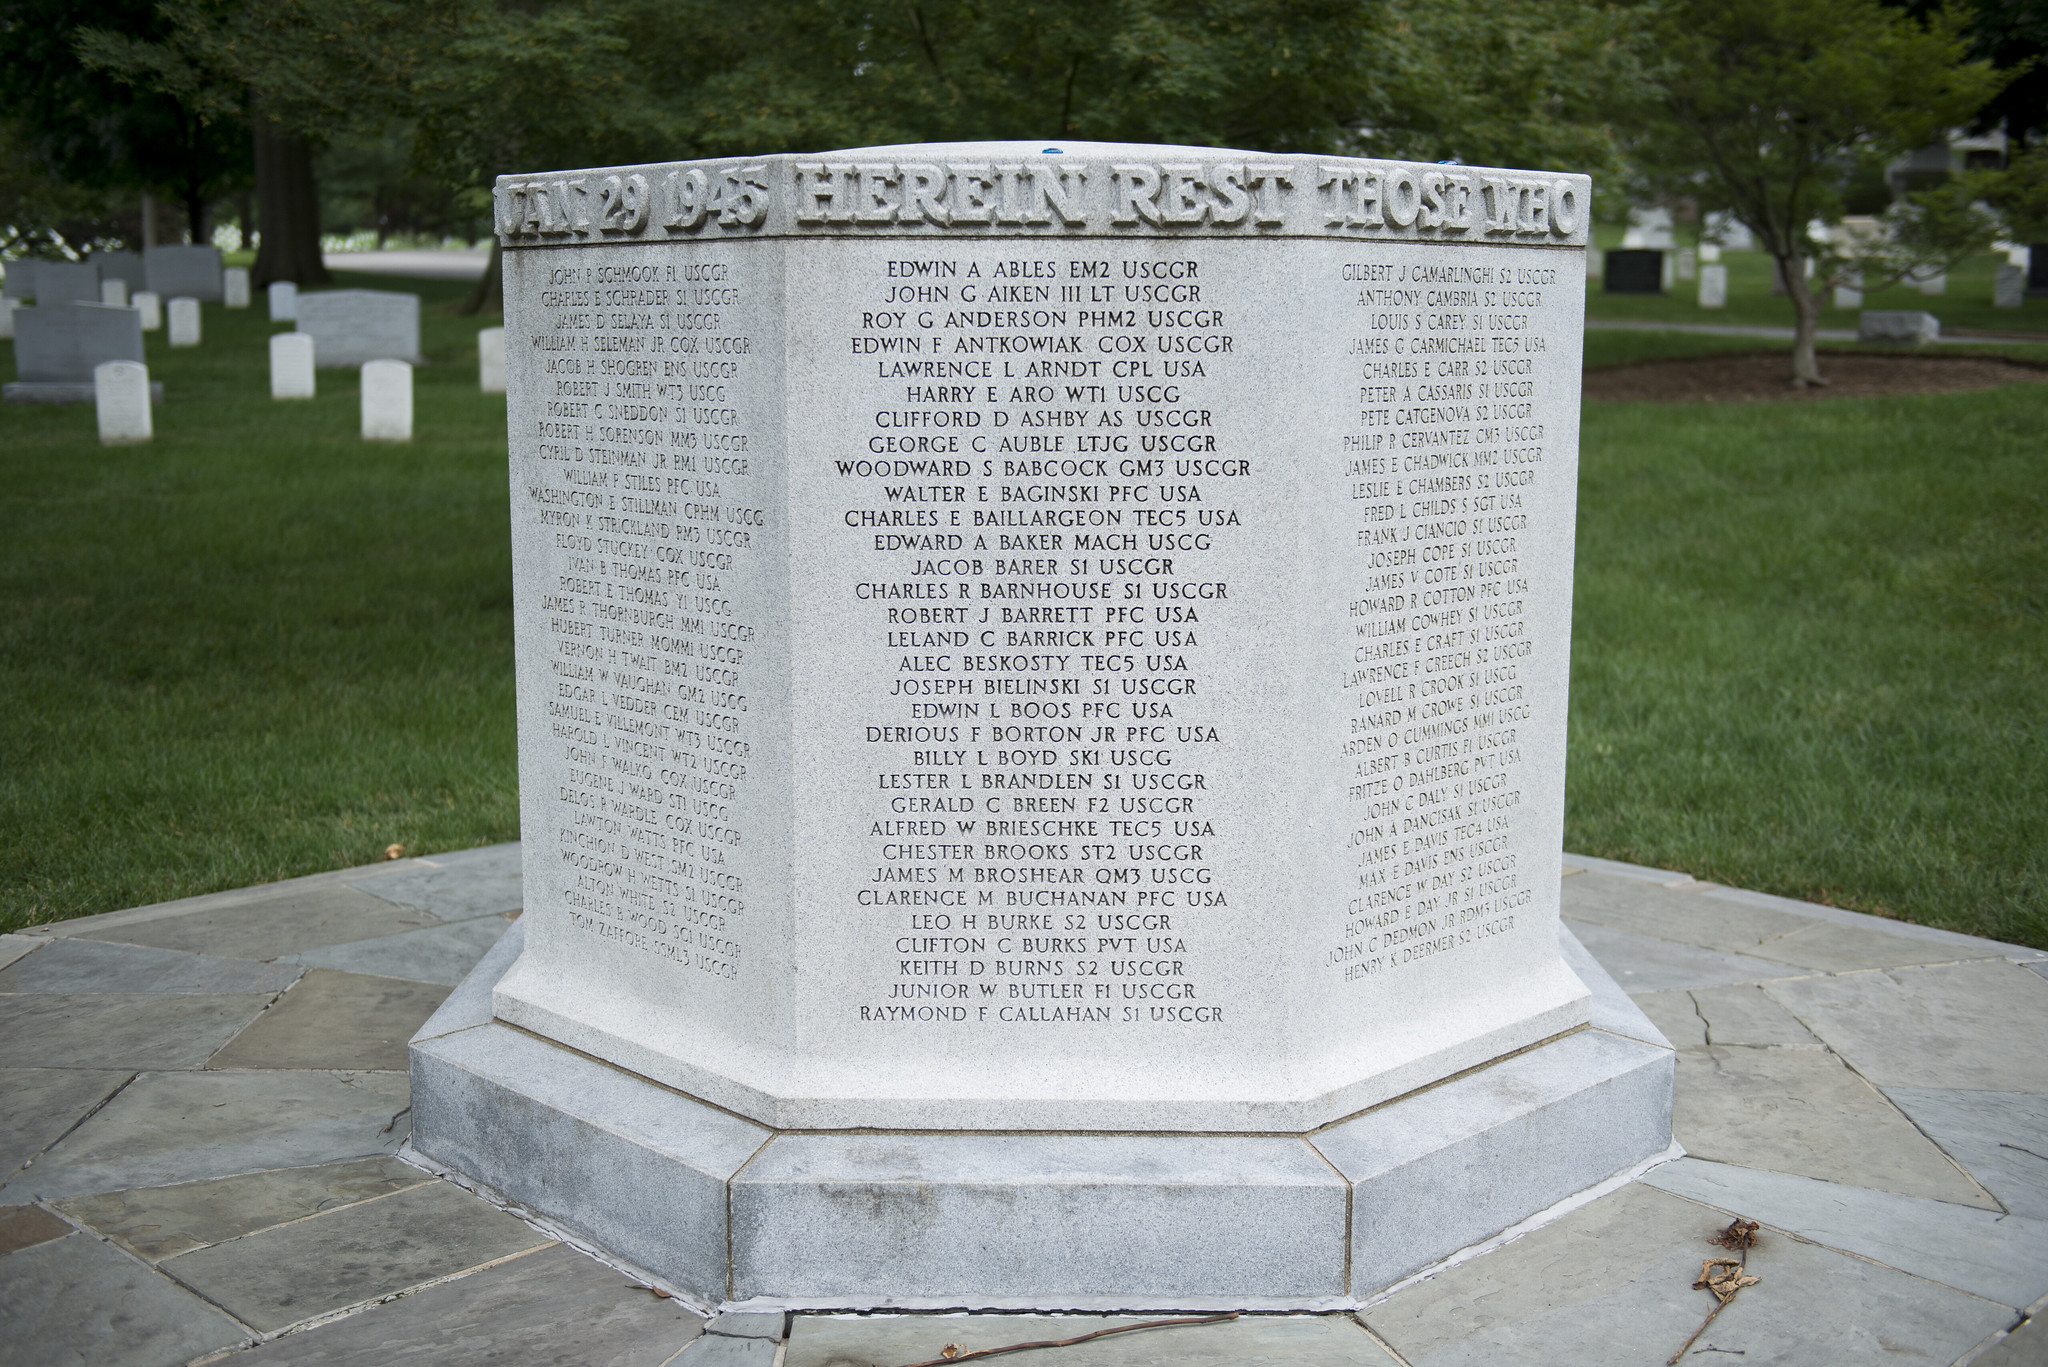 The USS Serpens Monument, an approximately four-foot-tall, octagonal granite marker inscribed with names of the 250 victims of the 1945 Coast Guard disaster